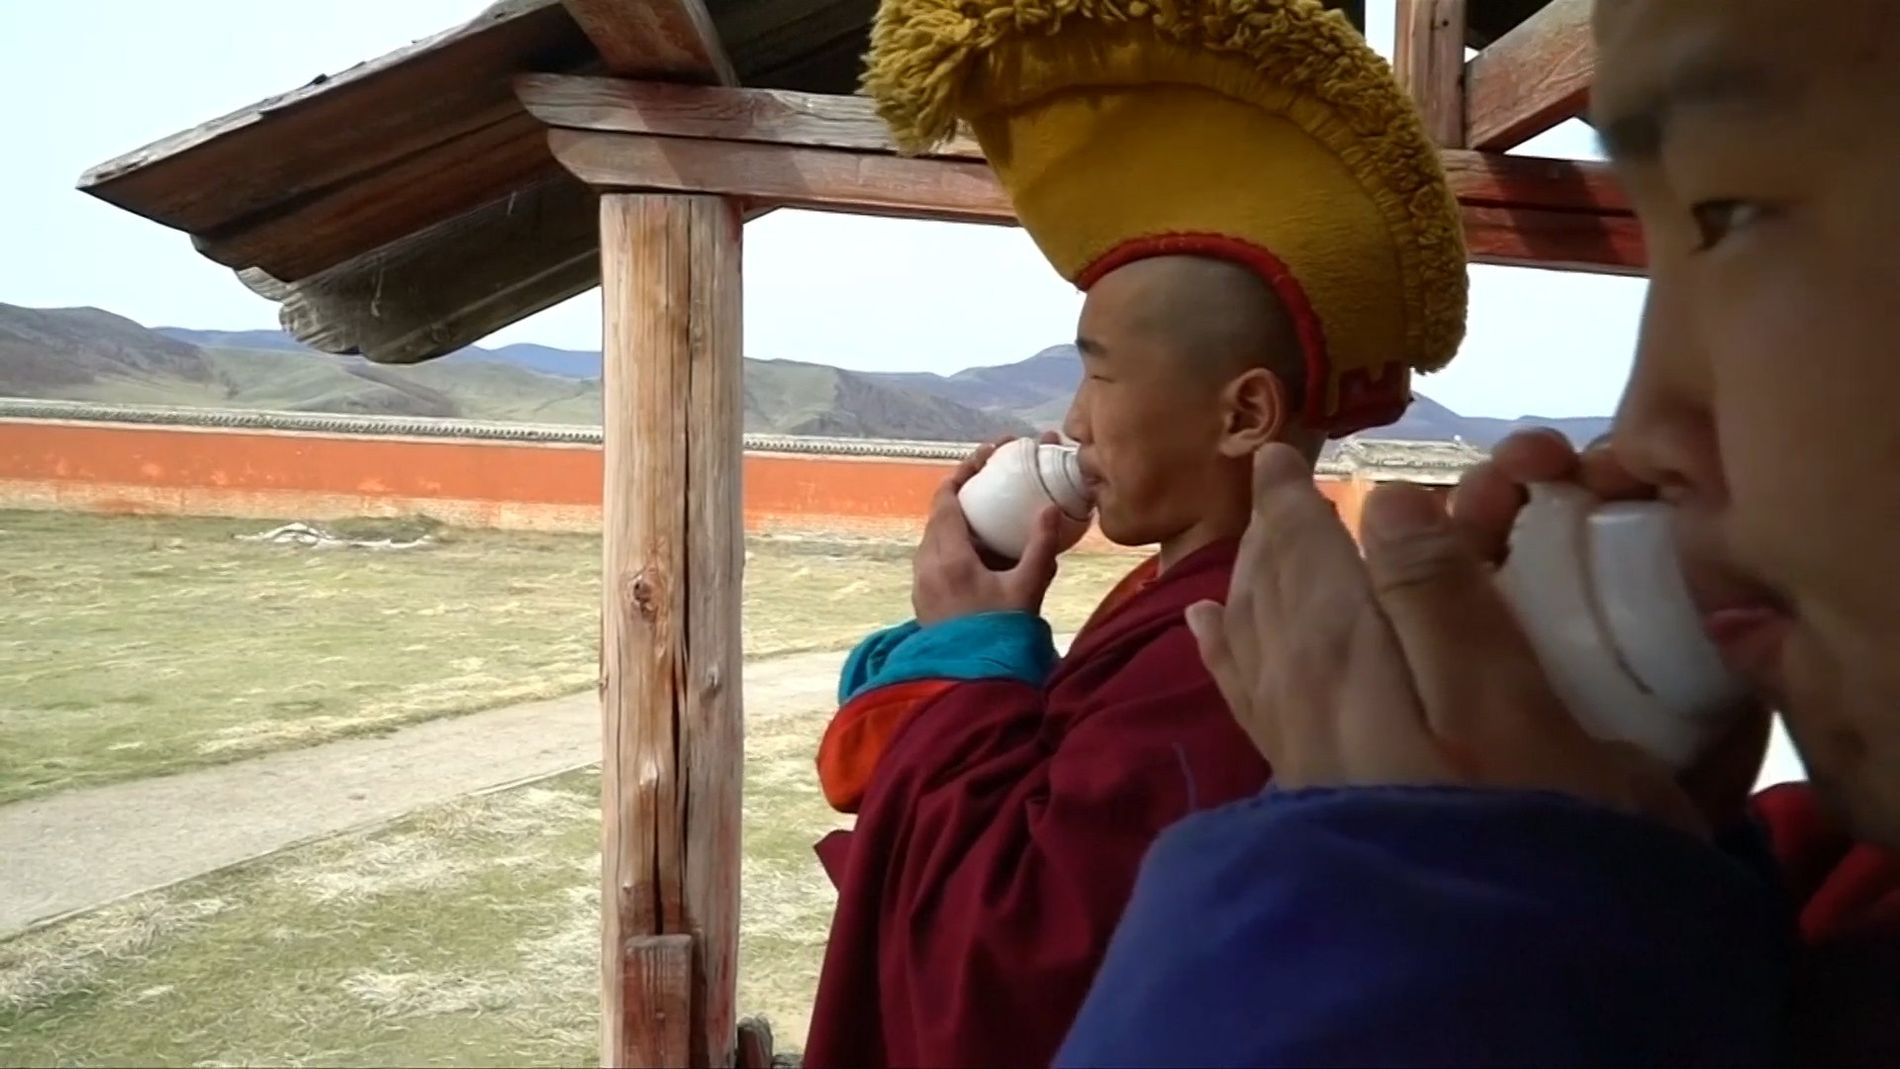 See How Millennial Monks Adapt to the Modern World